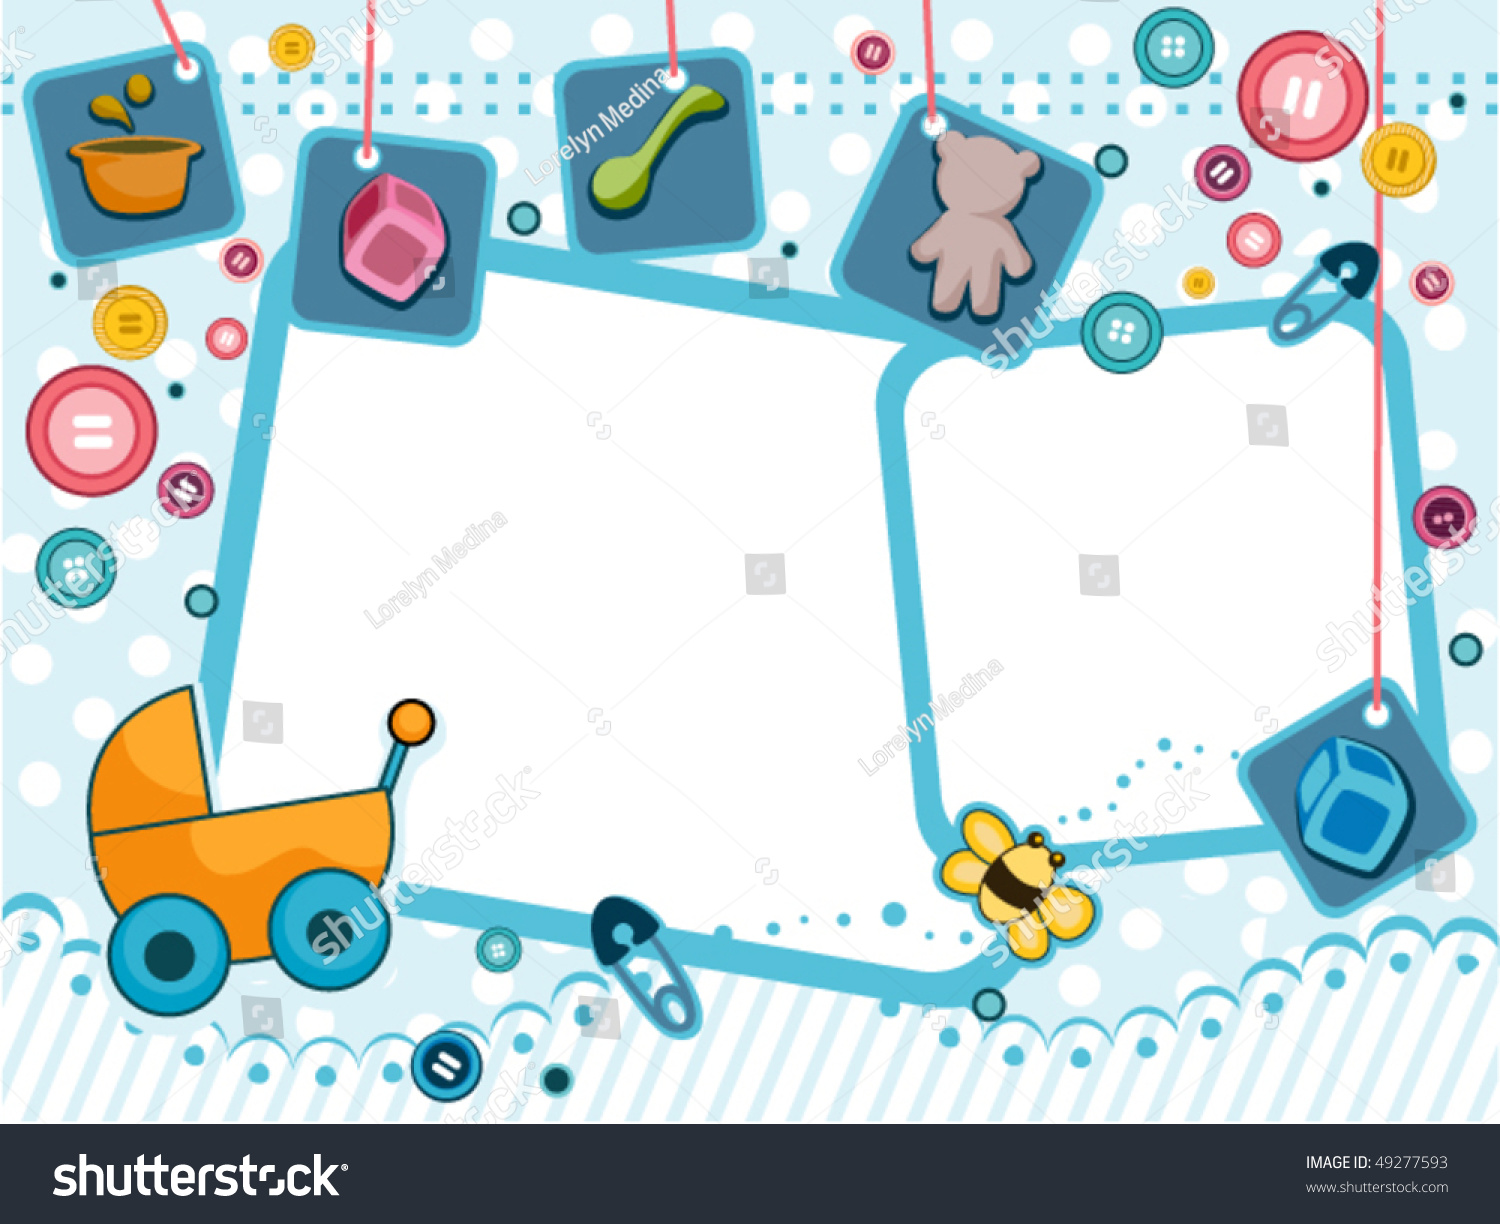 baby frame design vector